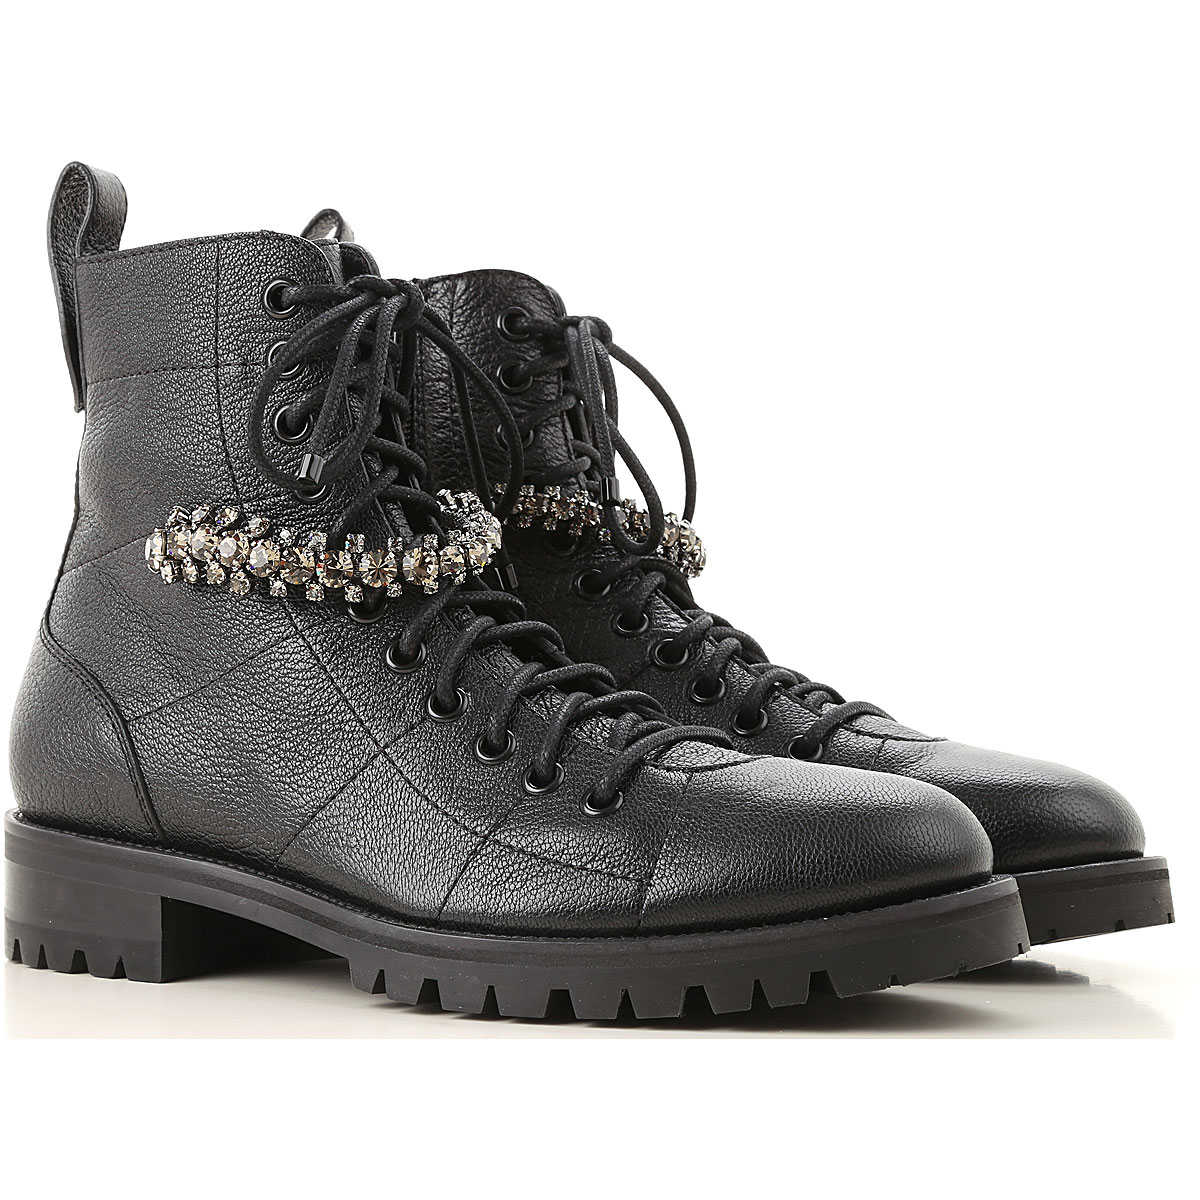 Jimmy Choo Boots for Women Booties SE - GOOFASH